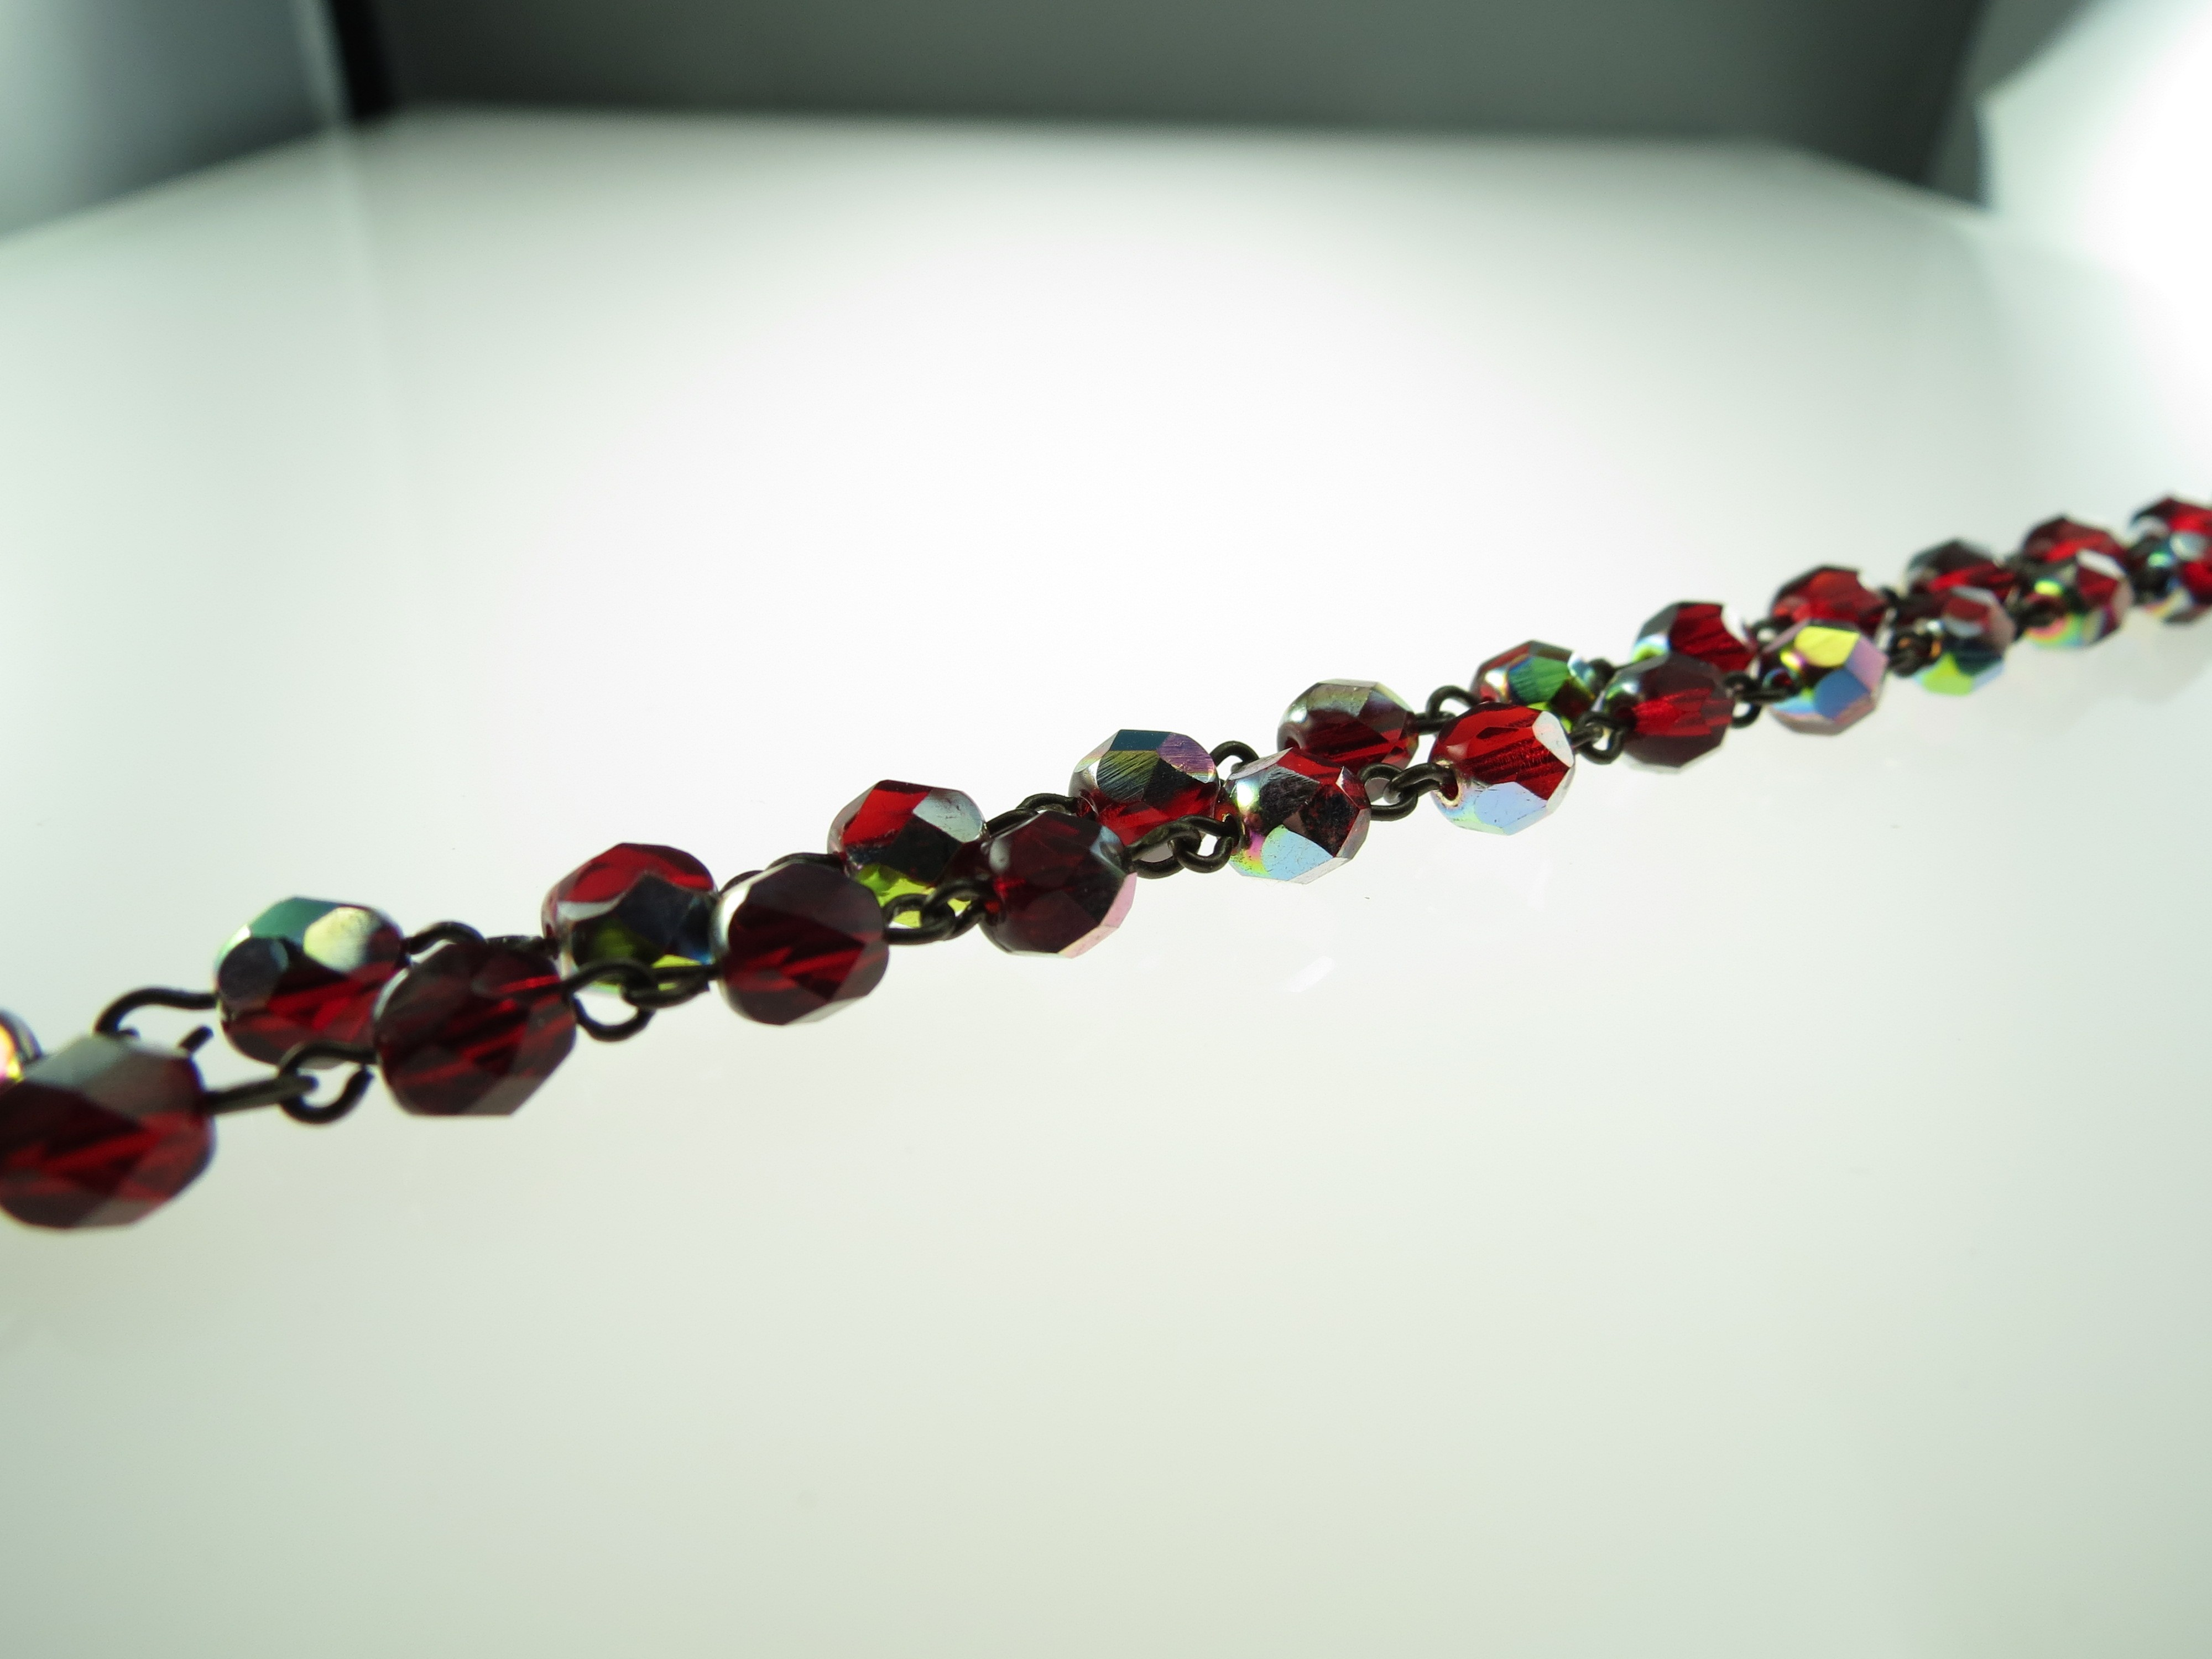 Czech Linked Rosary Chain, 6mm Ruby Vitrail Faceted Beads, Brass Linked Chain, (Sold by the Meter)